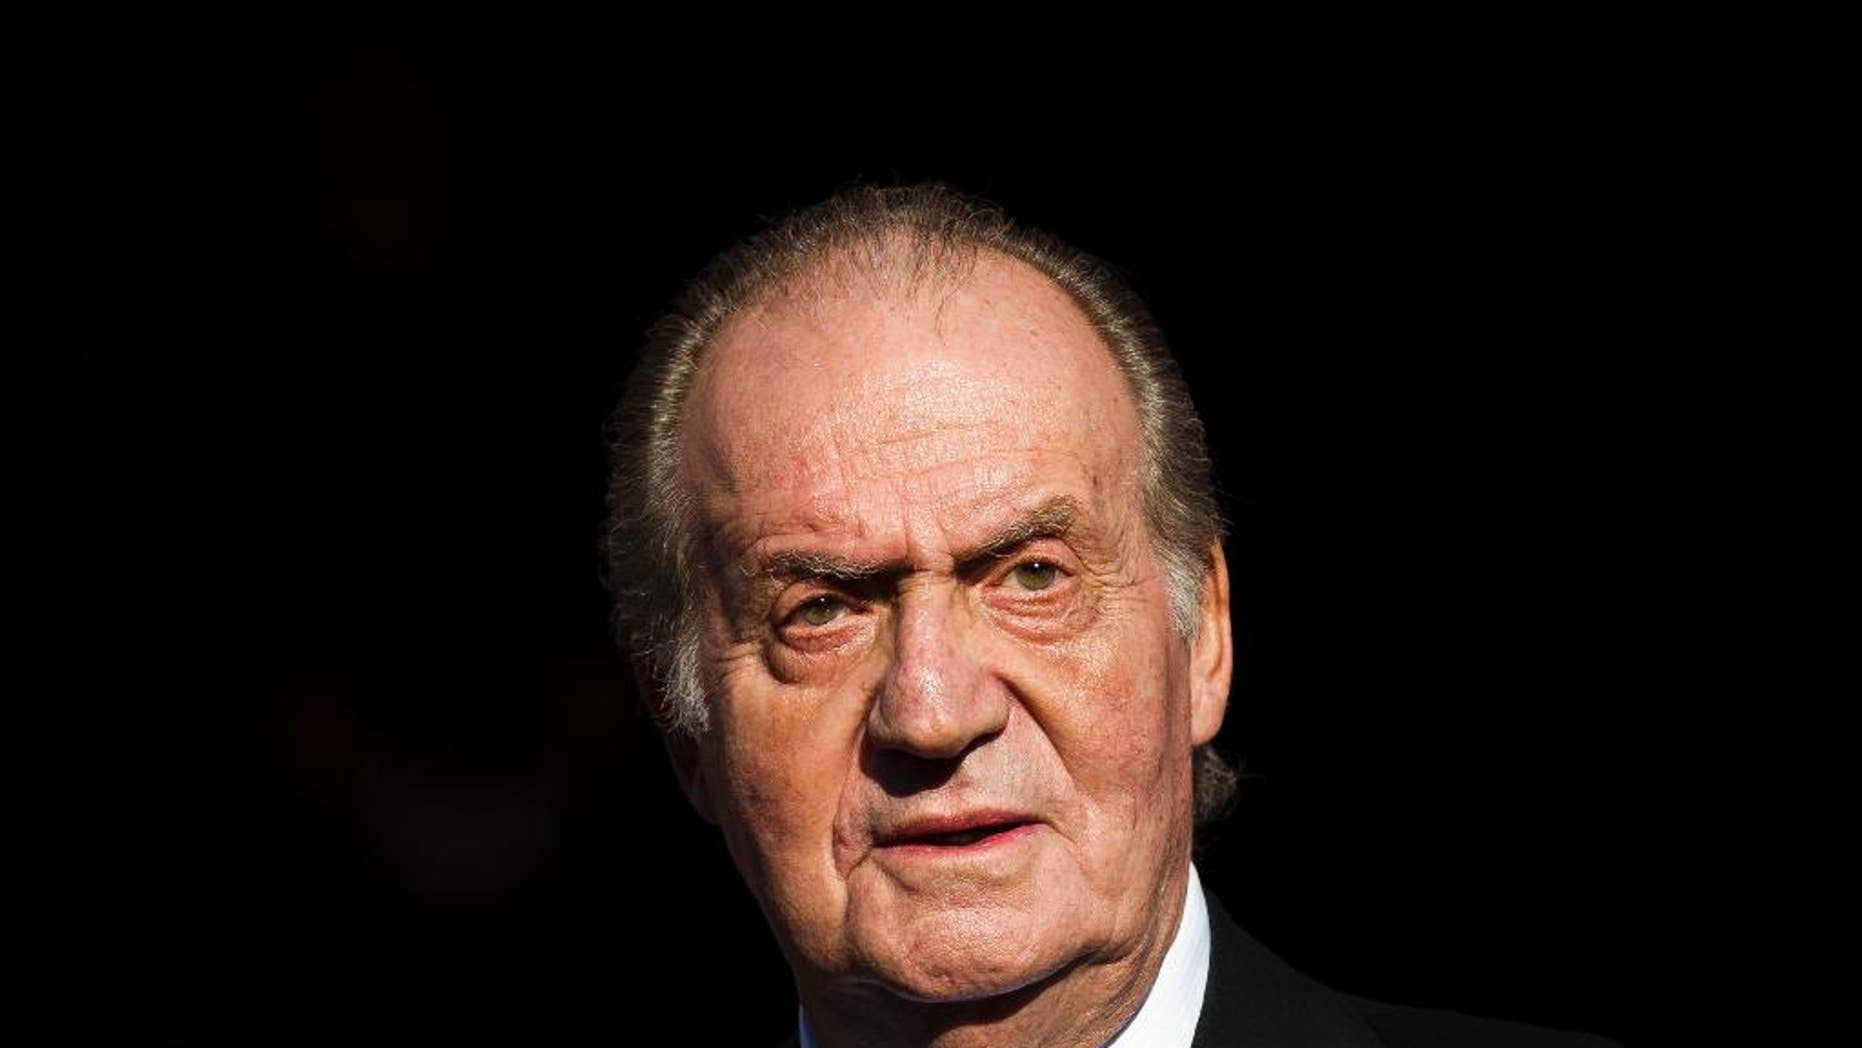 FILE - In this Tuesday, Dec. 27, 2011, file photo, Spain's King Juan Carlos leaves after the official opening of the Parliament, in Madrid. Carlos plans to abdicate and pave the way for his son, Crown Prince Felipe, to take over, Prime Minister Mariano Rajoy told the country Monday, June 2, 2014, in an announcement that was broadcast nationwide. The 76-year-old Carlos oversaw Spain's transition from dictatorship to democracy but has had health problems in recent years. (AP Photo/Daniel Ochoa de Olza, File)